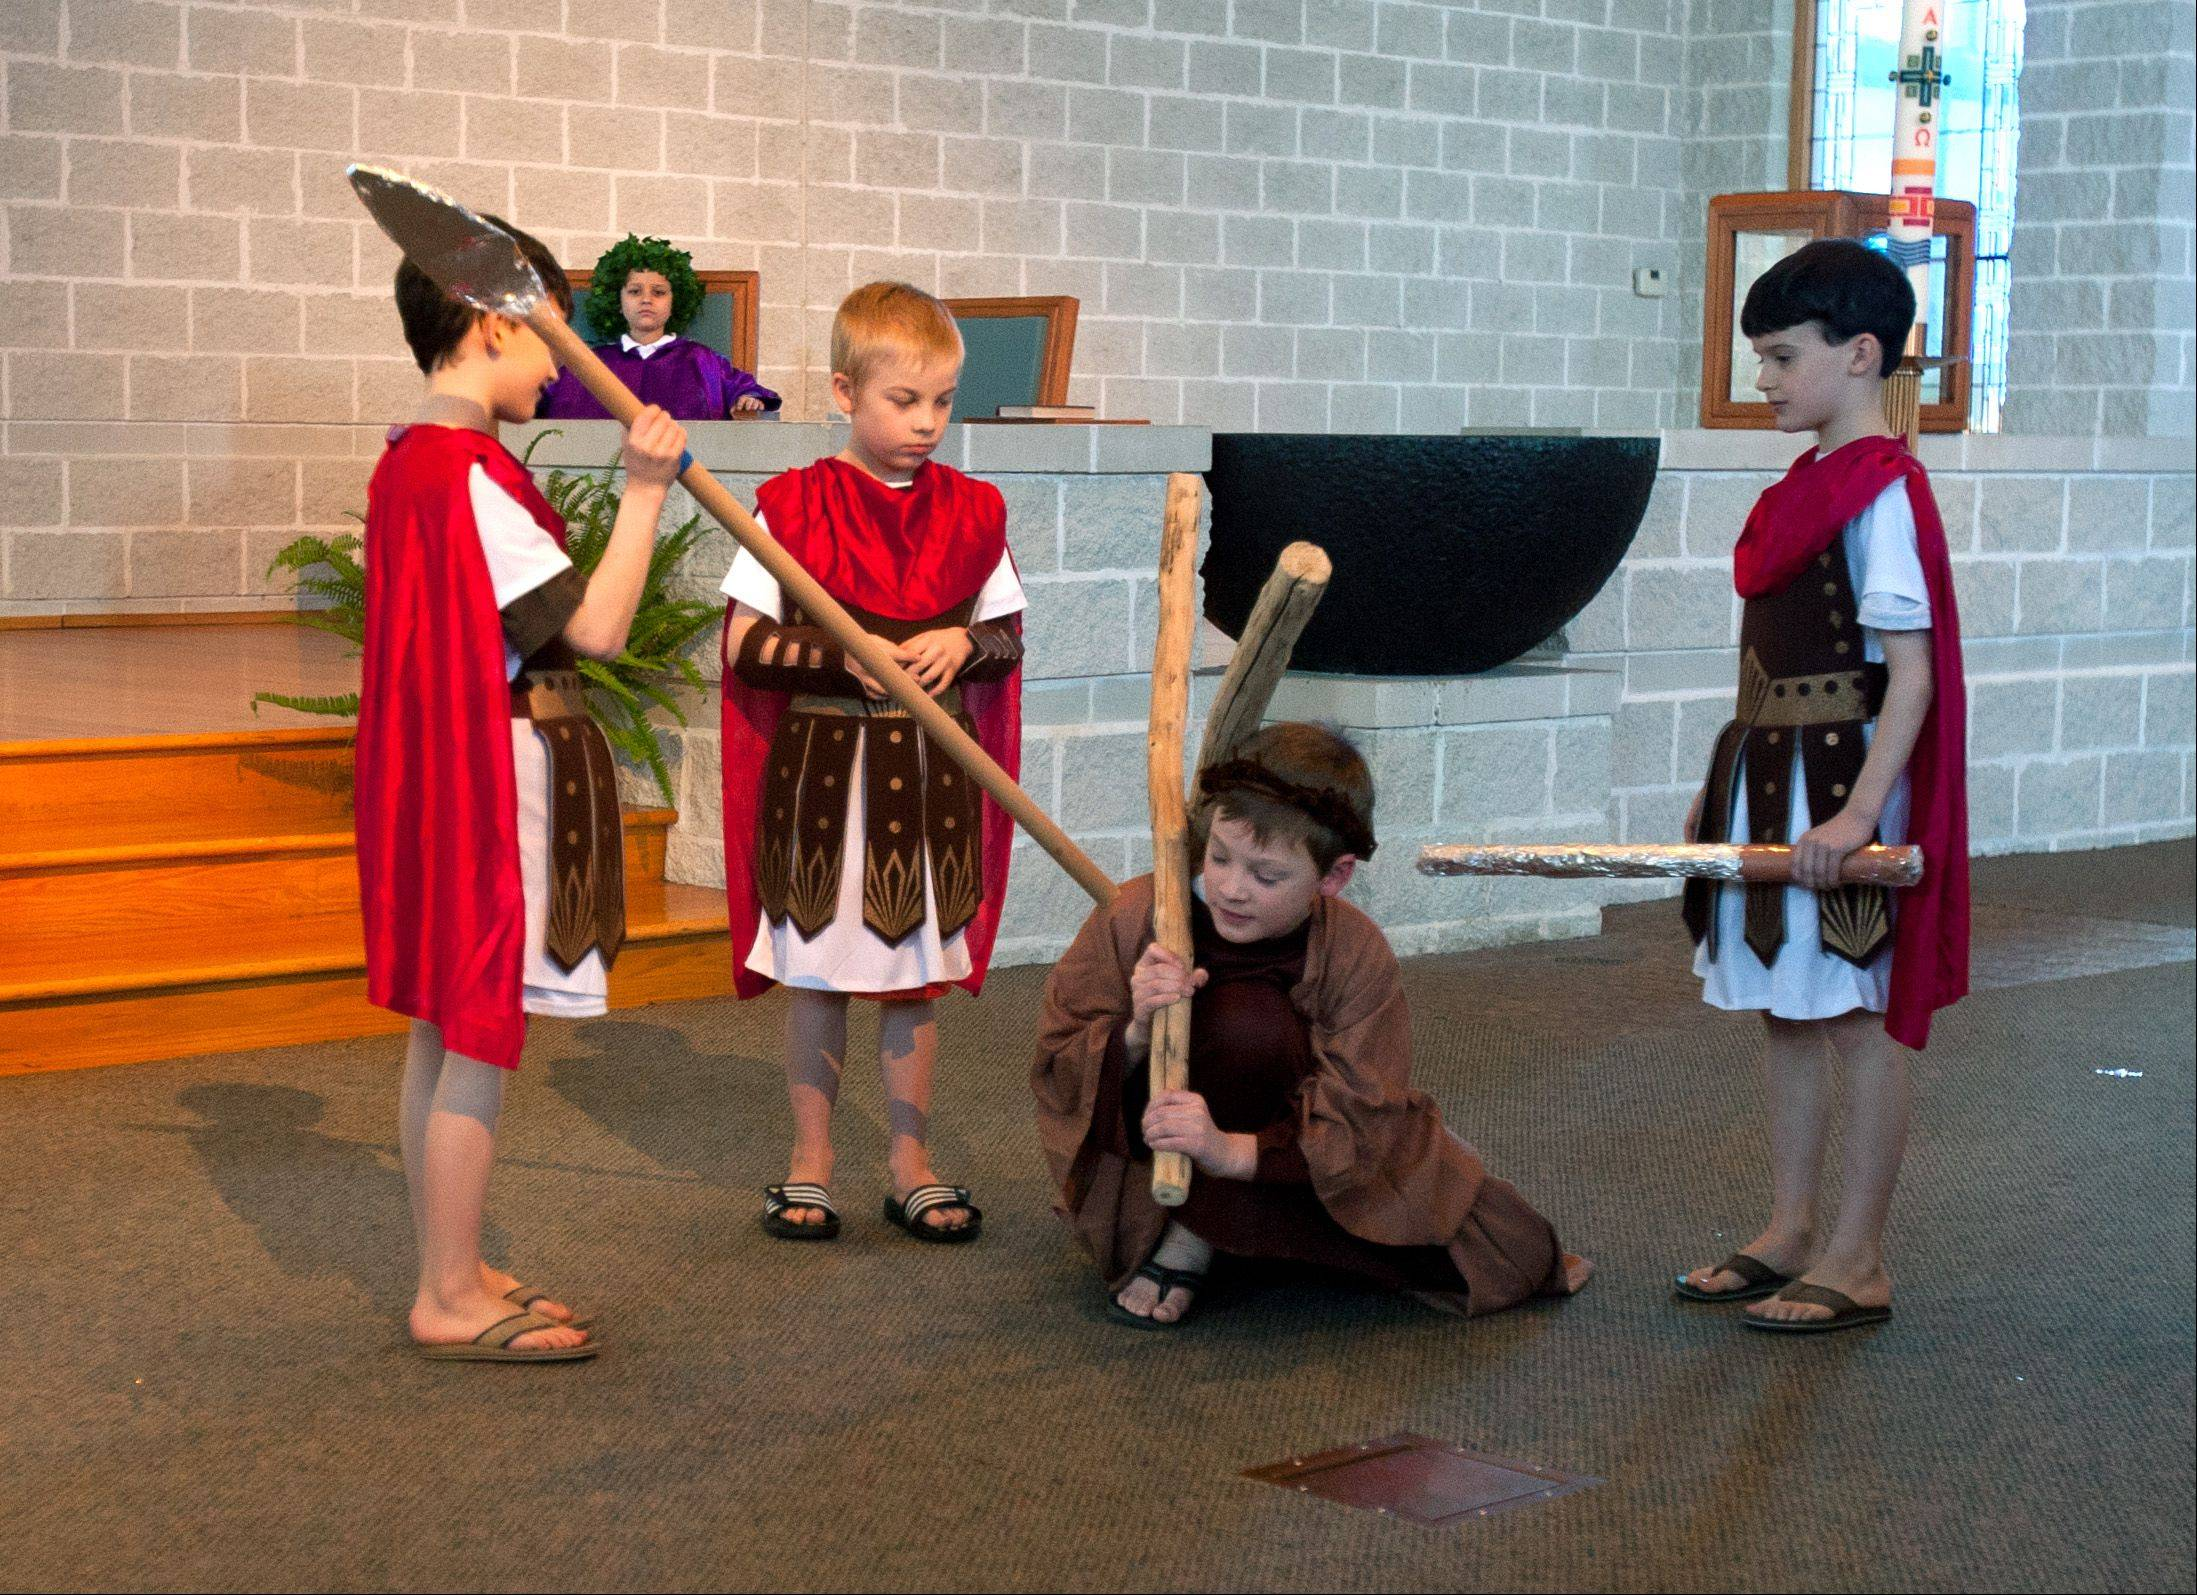 Jesus, portrayed by Jack Zgutowicz, falls down during a Living Stations of the Cross, performed by third graders at St. James the Apostle School in Glen Ellyn. Soldiers are Nick Kiley, left, John Blankenship, center, and Zach Kiley, right.